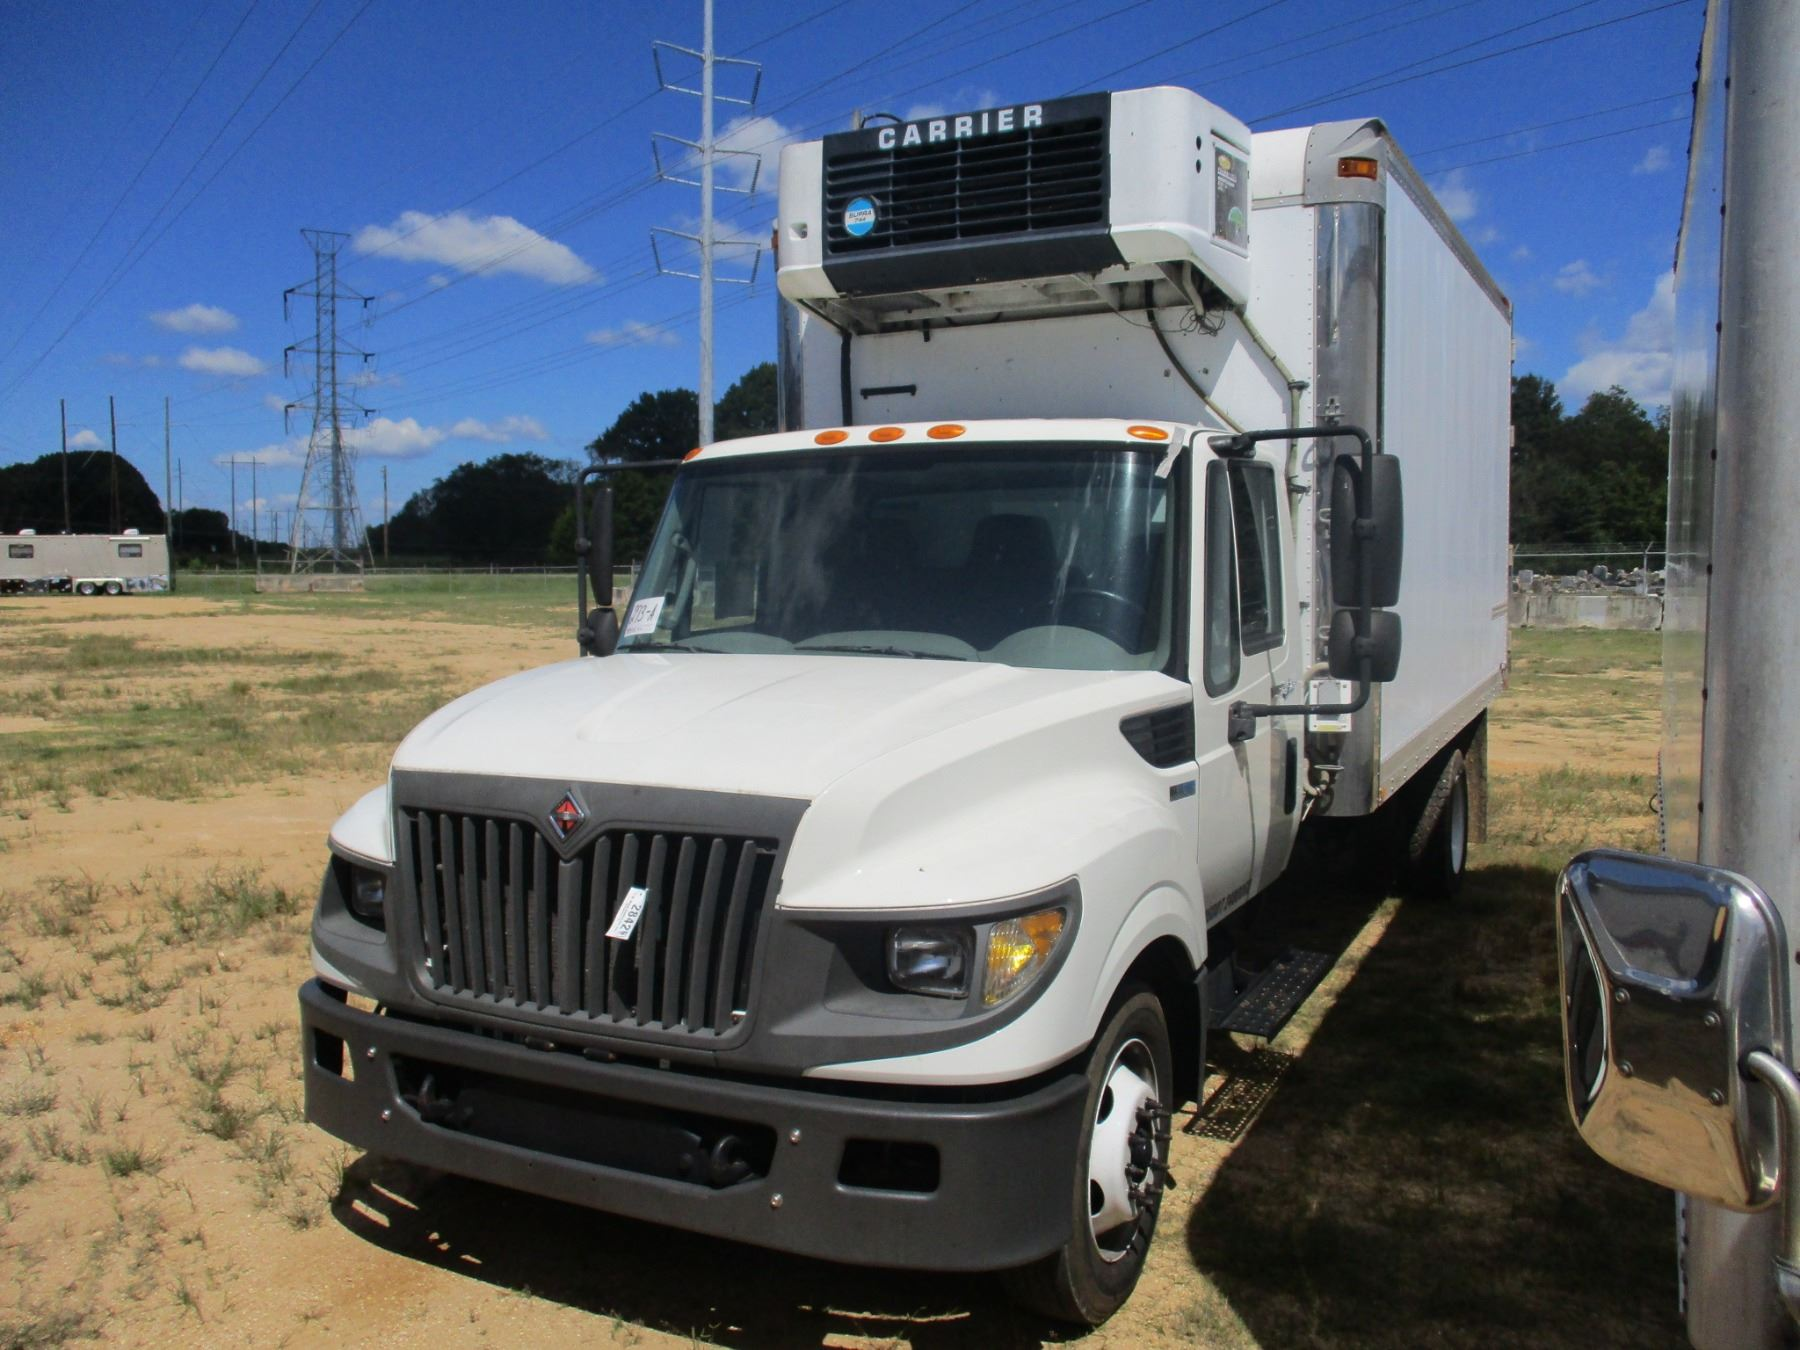 medium resolution of image 1 2012 international terra star box truck vin sn 1htjsskk8cj623733